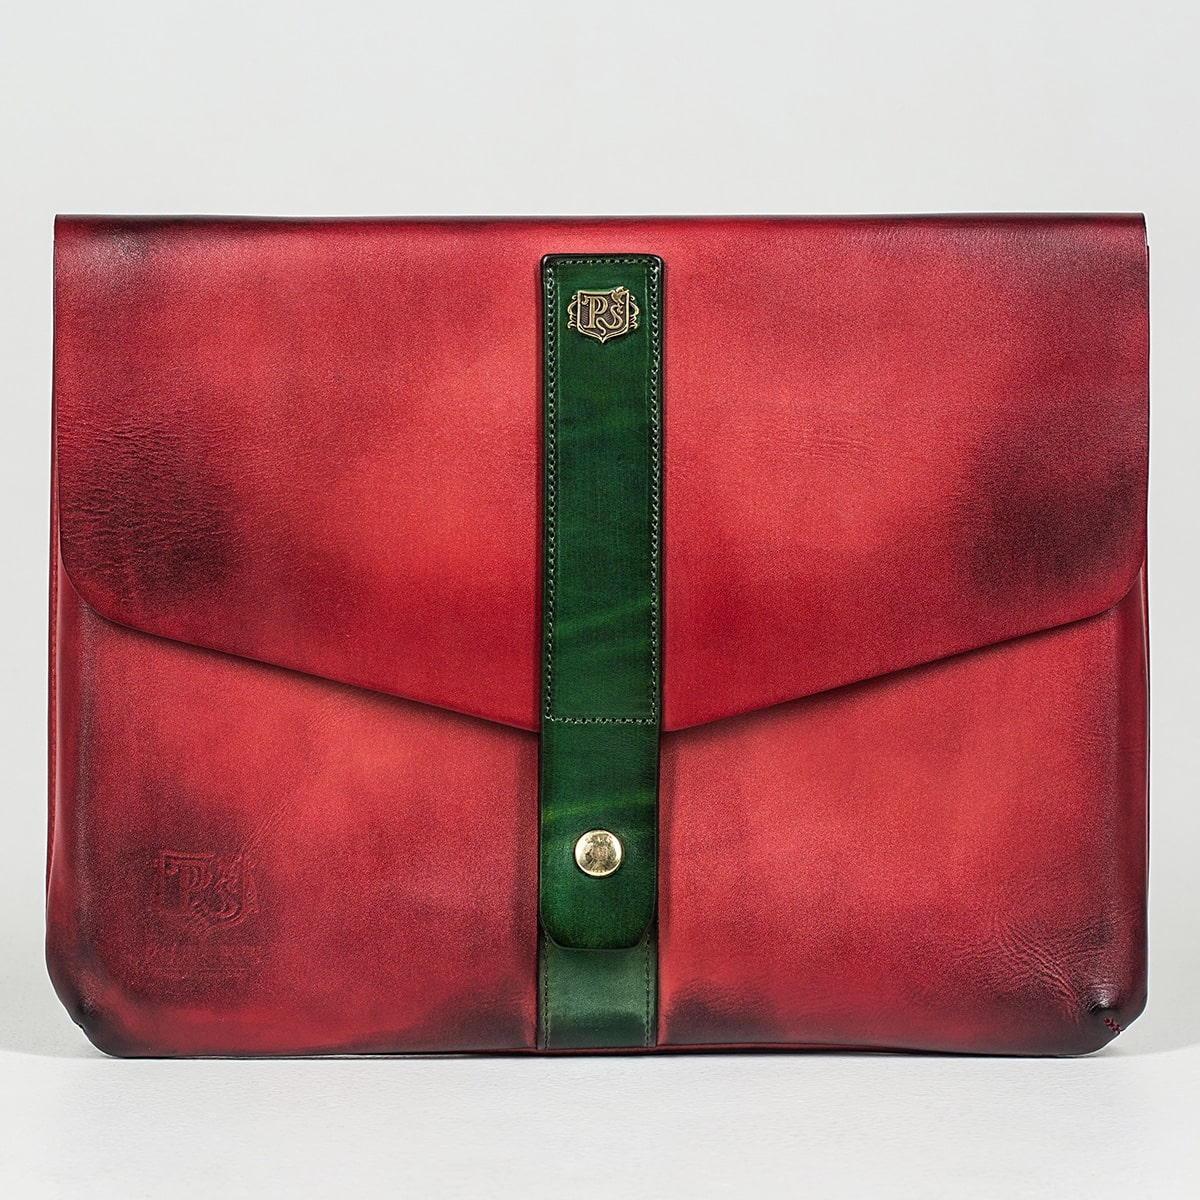 Document folder SOHO / 13'' MacBook case grassy green & red currant